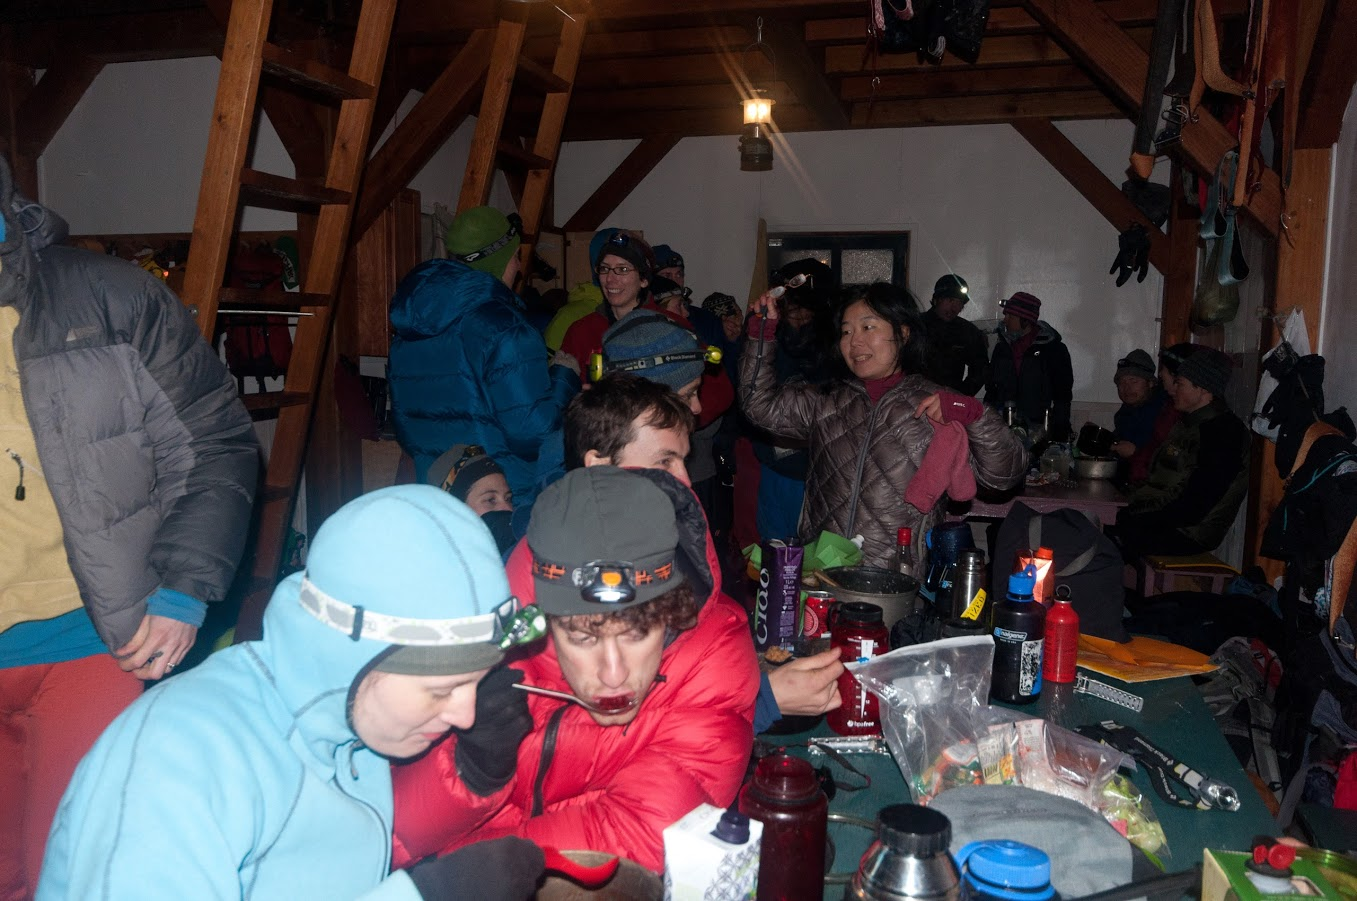 How to keep an unheated hut warm: pile 30 or 40 people into it.